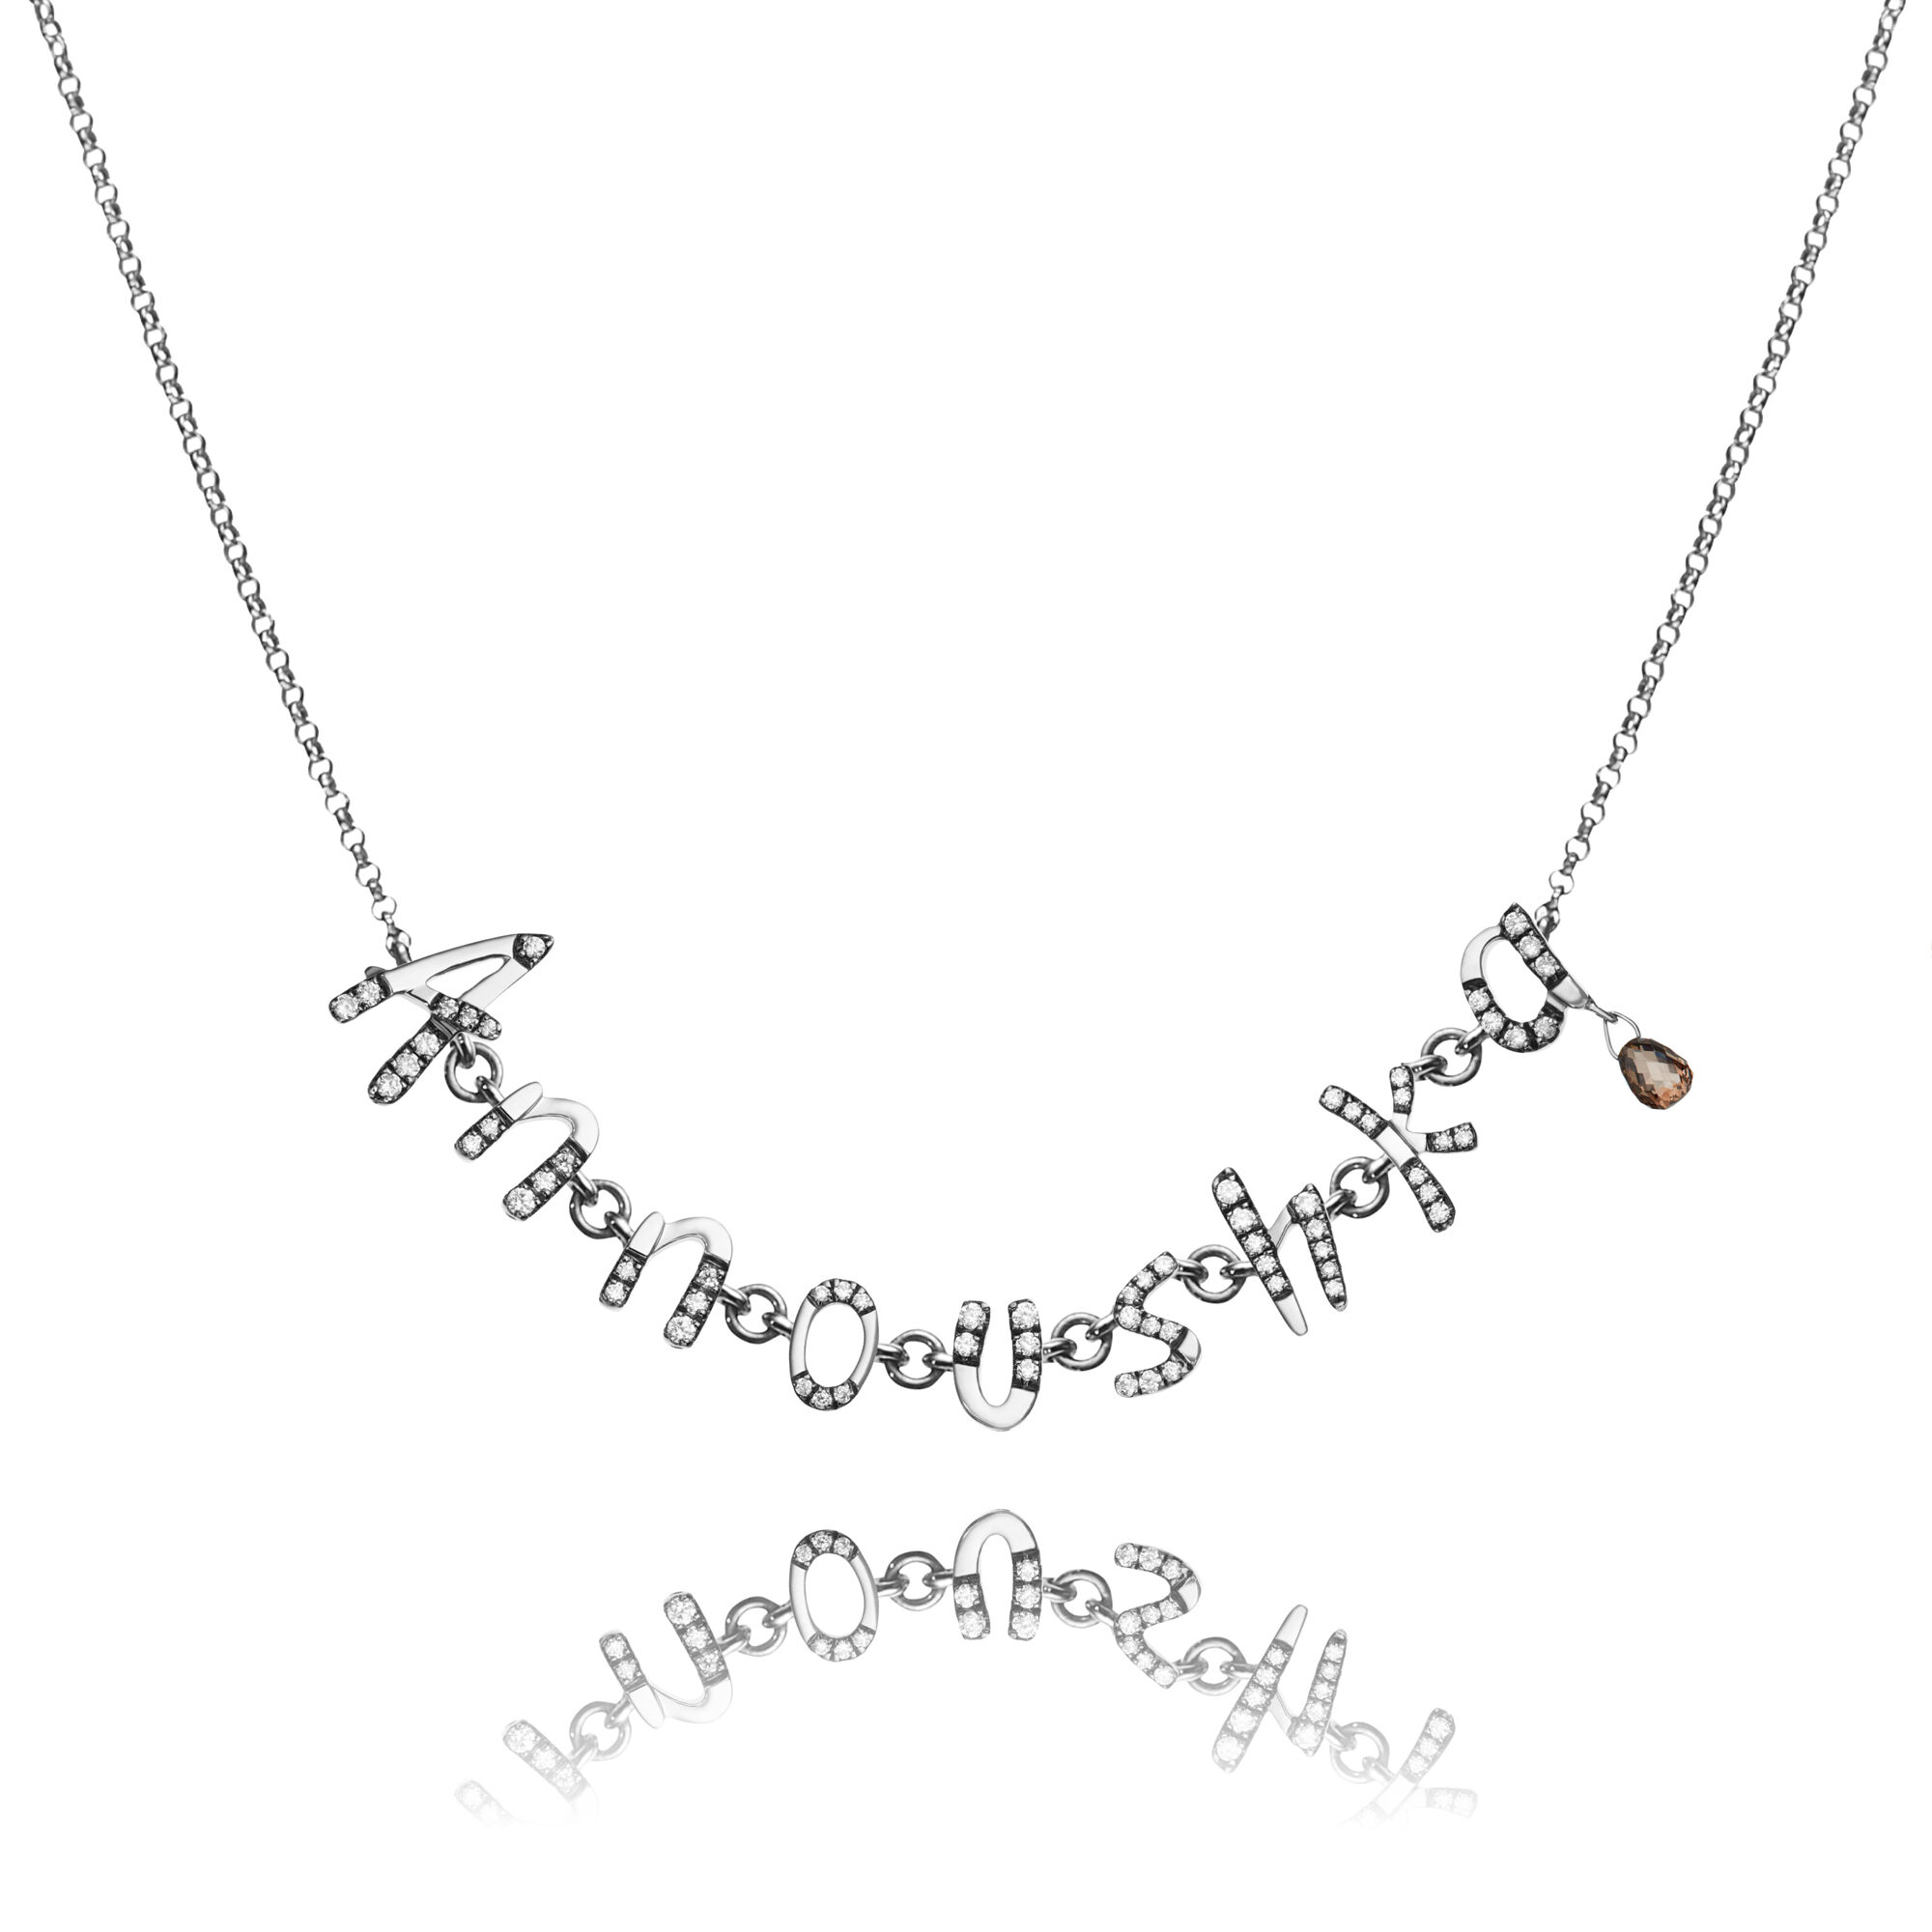 Personalised White Gold Chain Letters Necklace — Annoushka EU